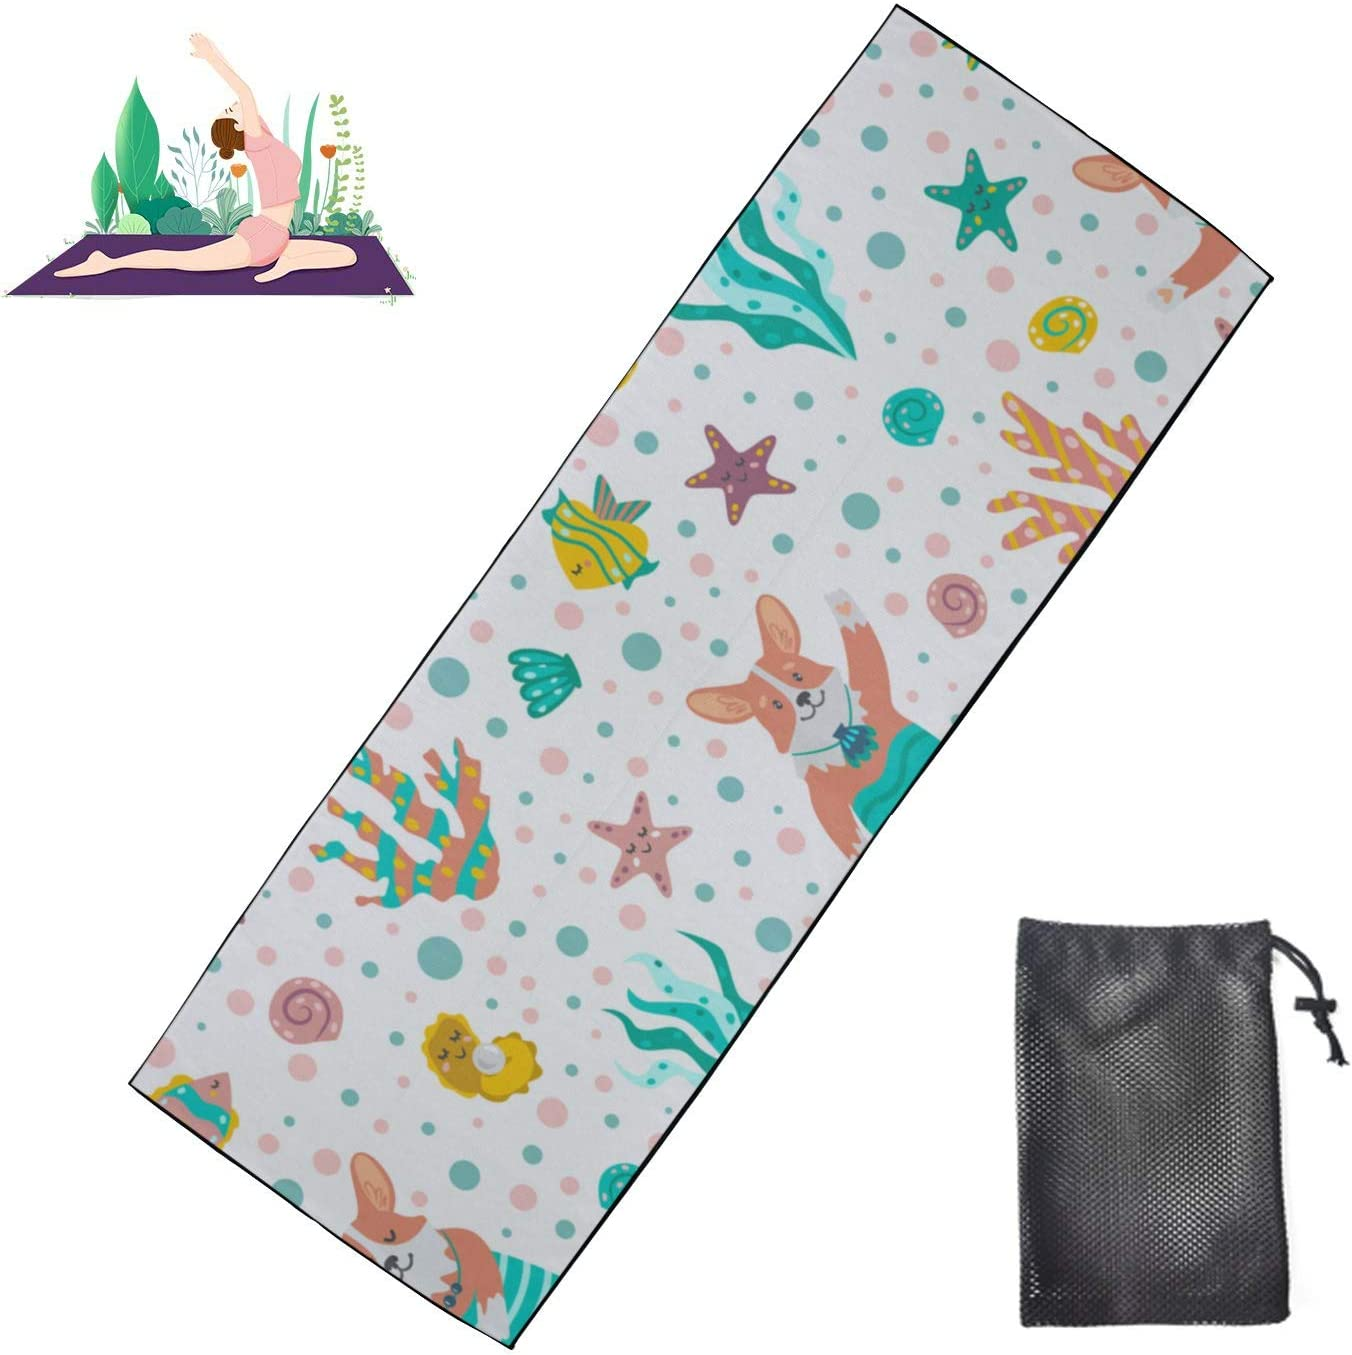 Huqalh Mens Yoga Mat Non Slip Bargain Funny Y with Max 45% OFF Tail Dog Mermaid Cute